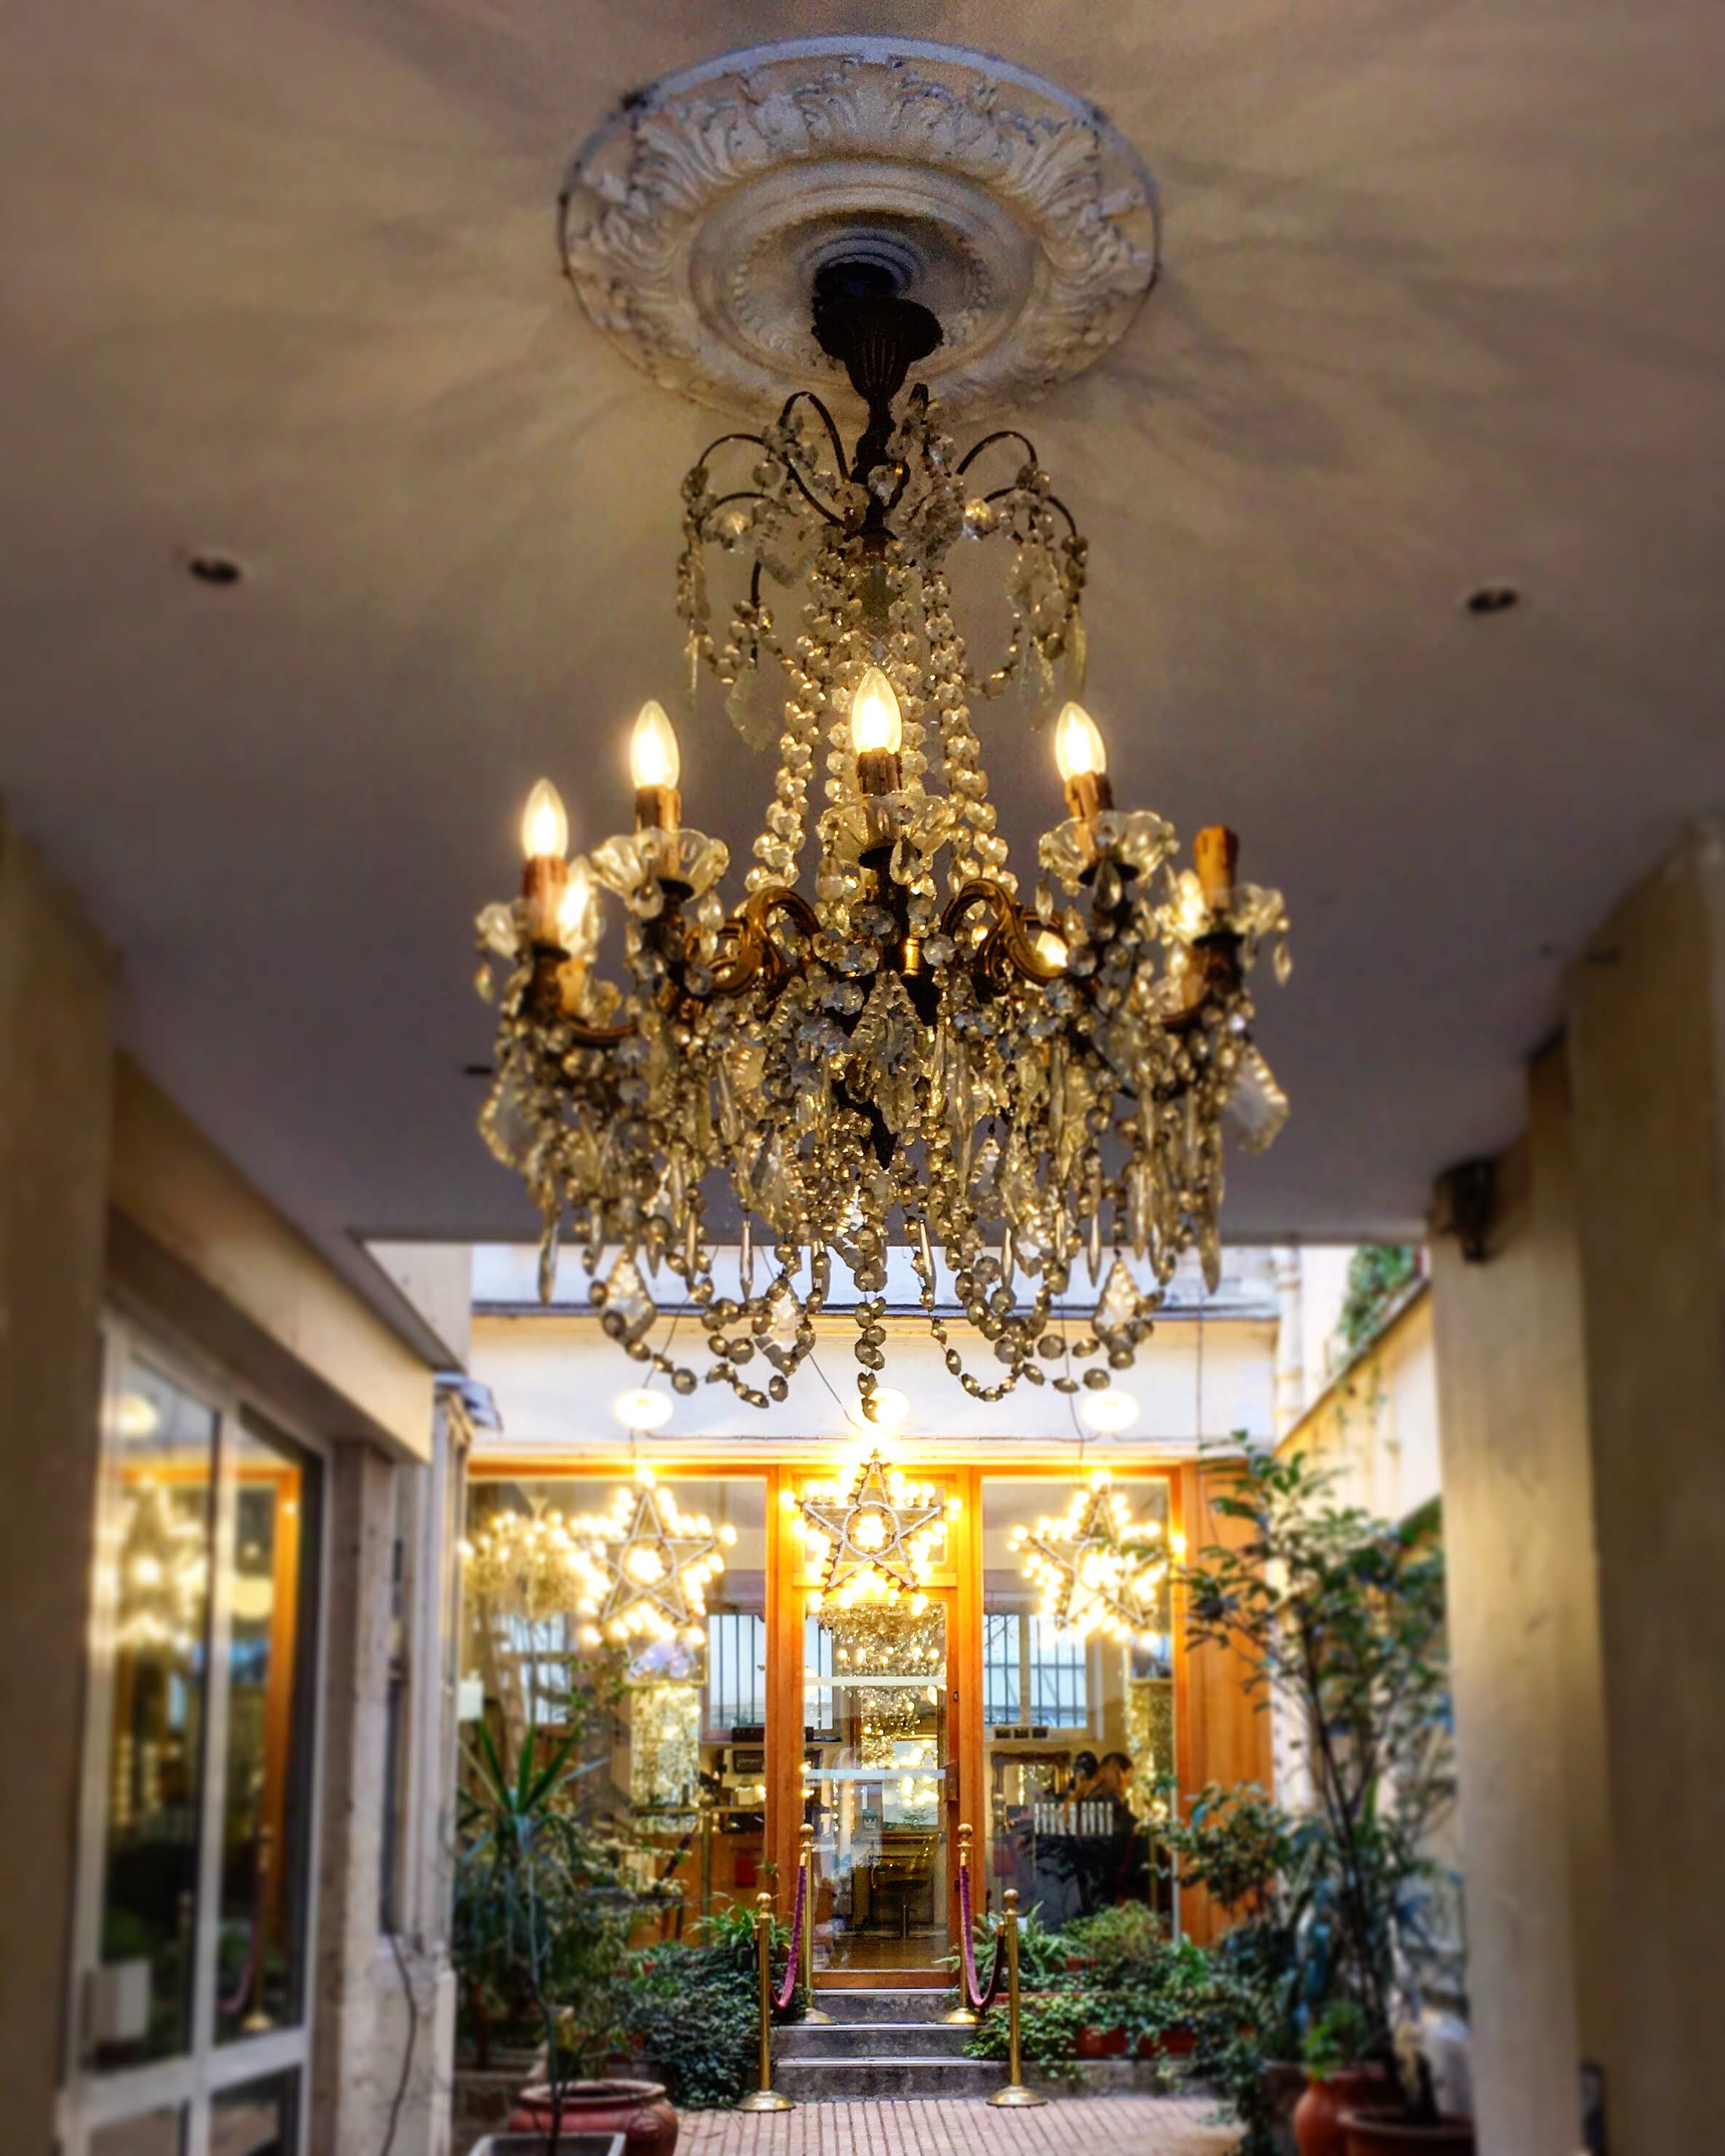 Outdoor chandelier… something you don't see every day!